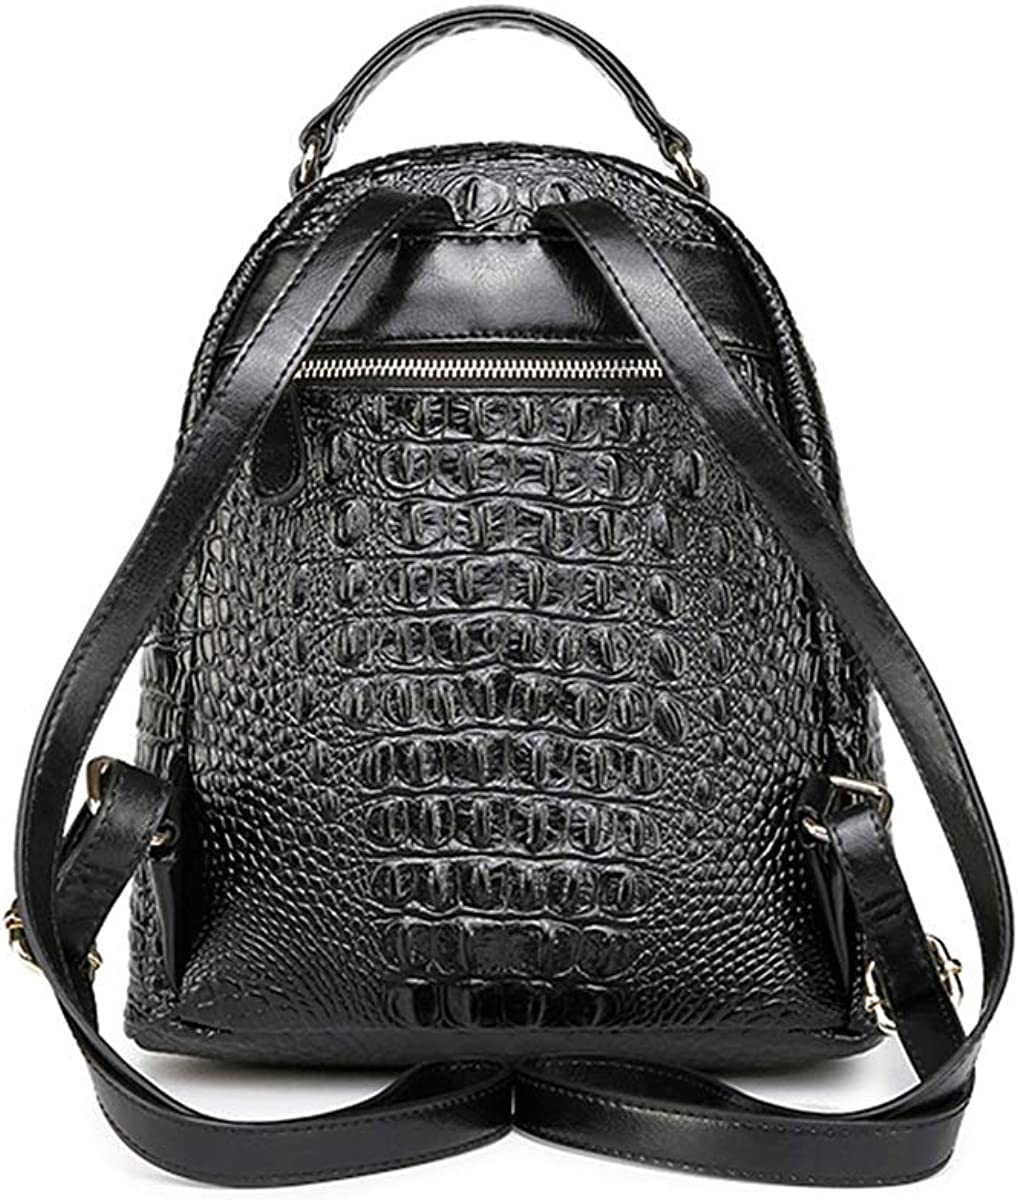 Large Capacity Kalmar Leather Handbag 2019 New Crocodile Pattern Casual Morden Leather Backpack Large Capacity Handbags Travel Bag Nappy Tote Bags for Mom /& Dad Color : Black